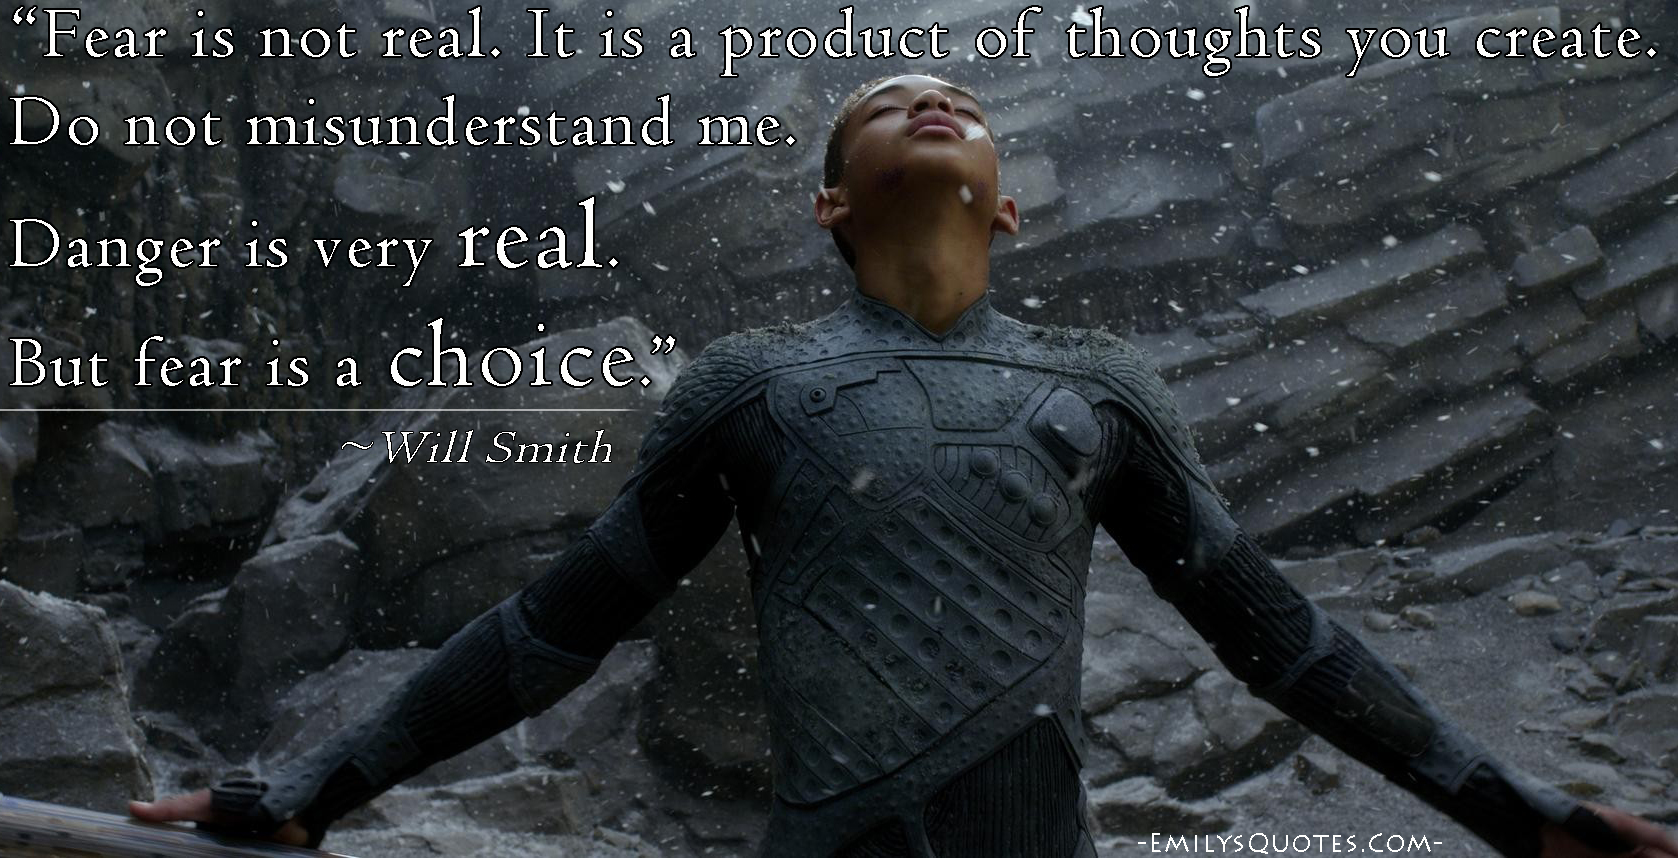 EmilysQuotes.Com - fear, real, thoughts, danger, choice, encouraging, Will Smith